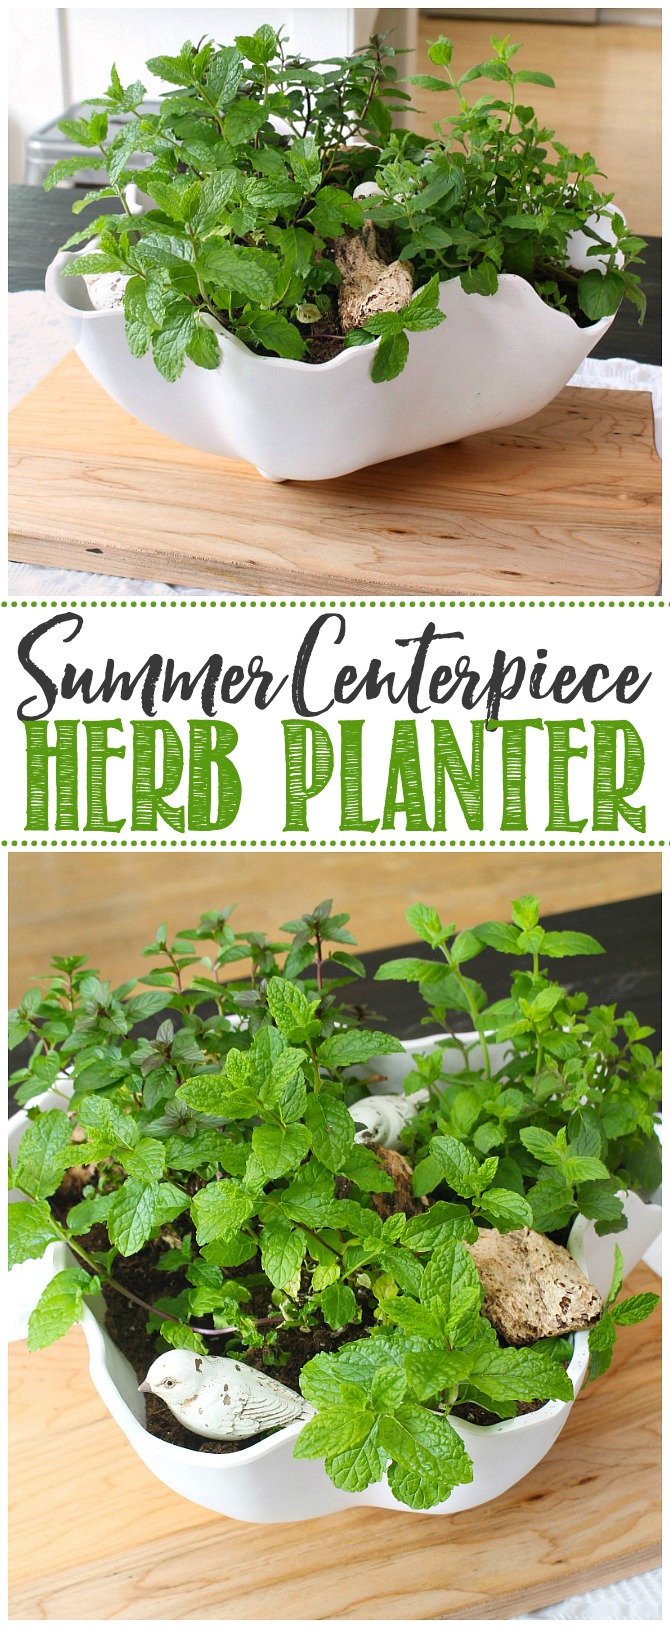 Summer centerpiece using mint herbs in a white bowl.